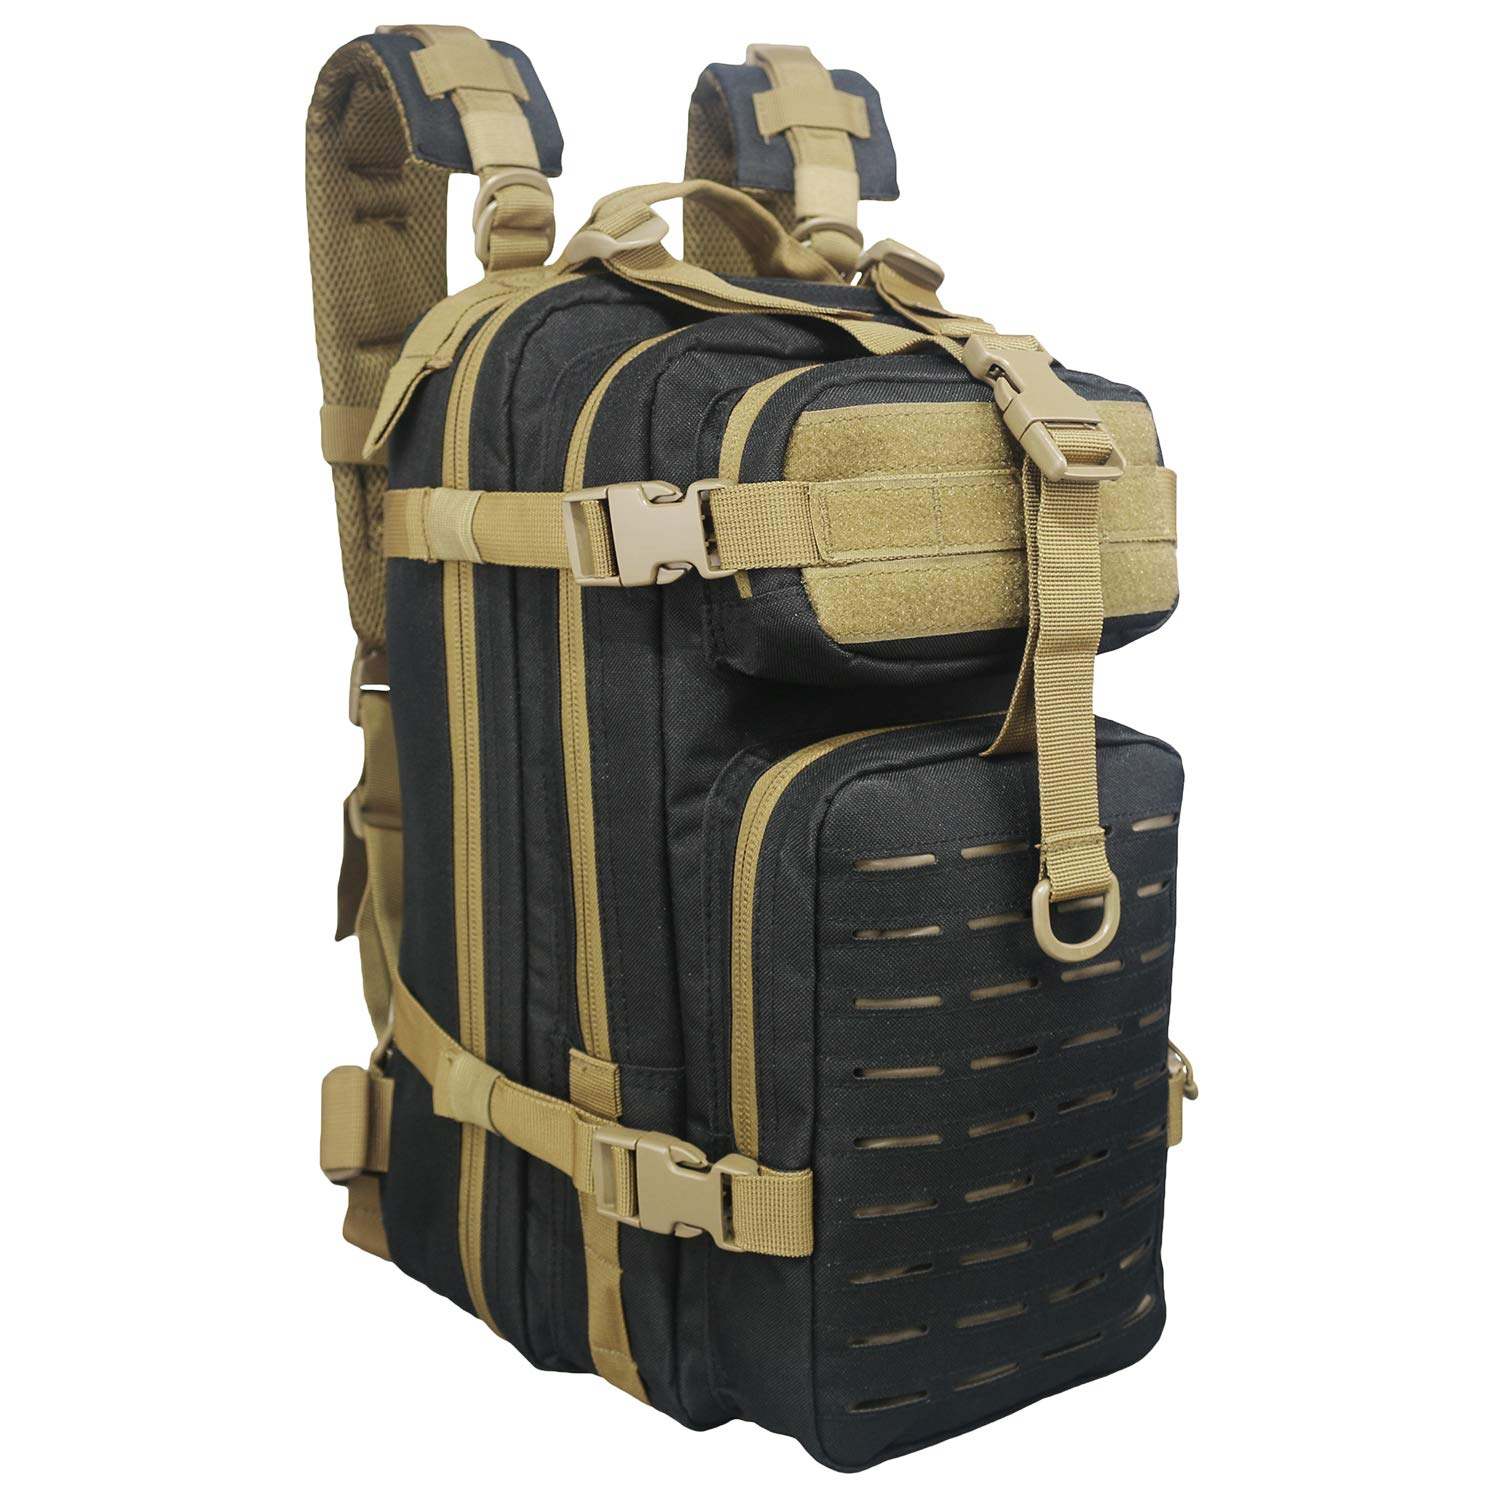 Fox Tactical Small Assault Backpack Military Backpack Tactical Bag, Waterproof,Molle System Rusksack for Outdoor, Hiking, Hunting,Camping Travel(Black/Tan)